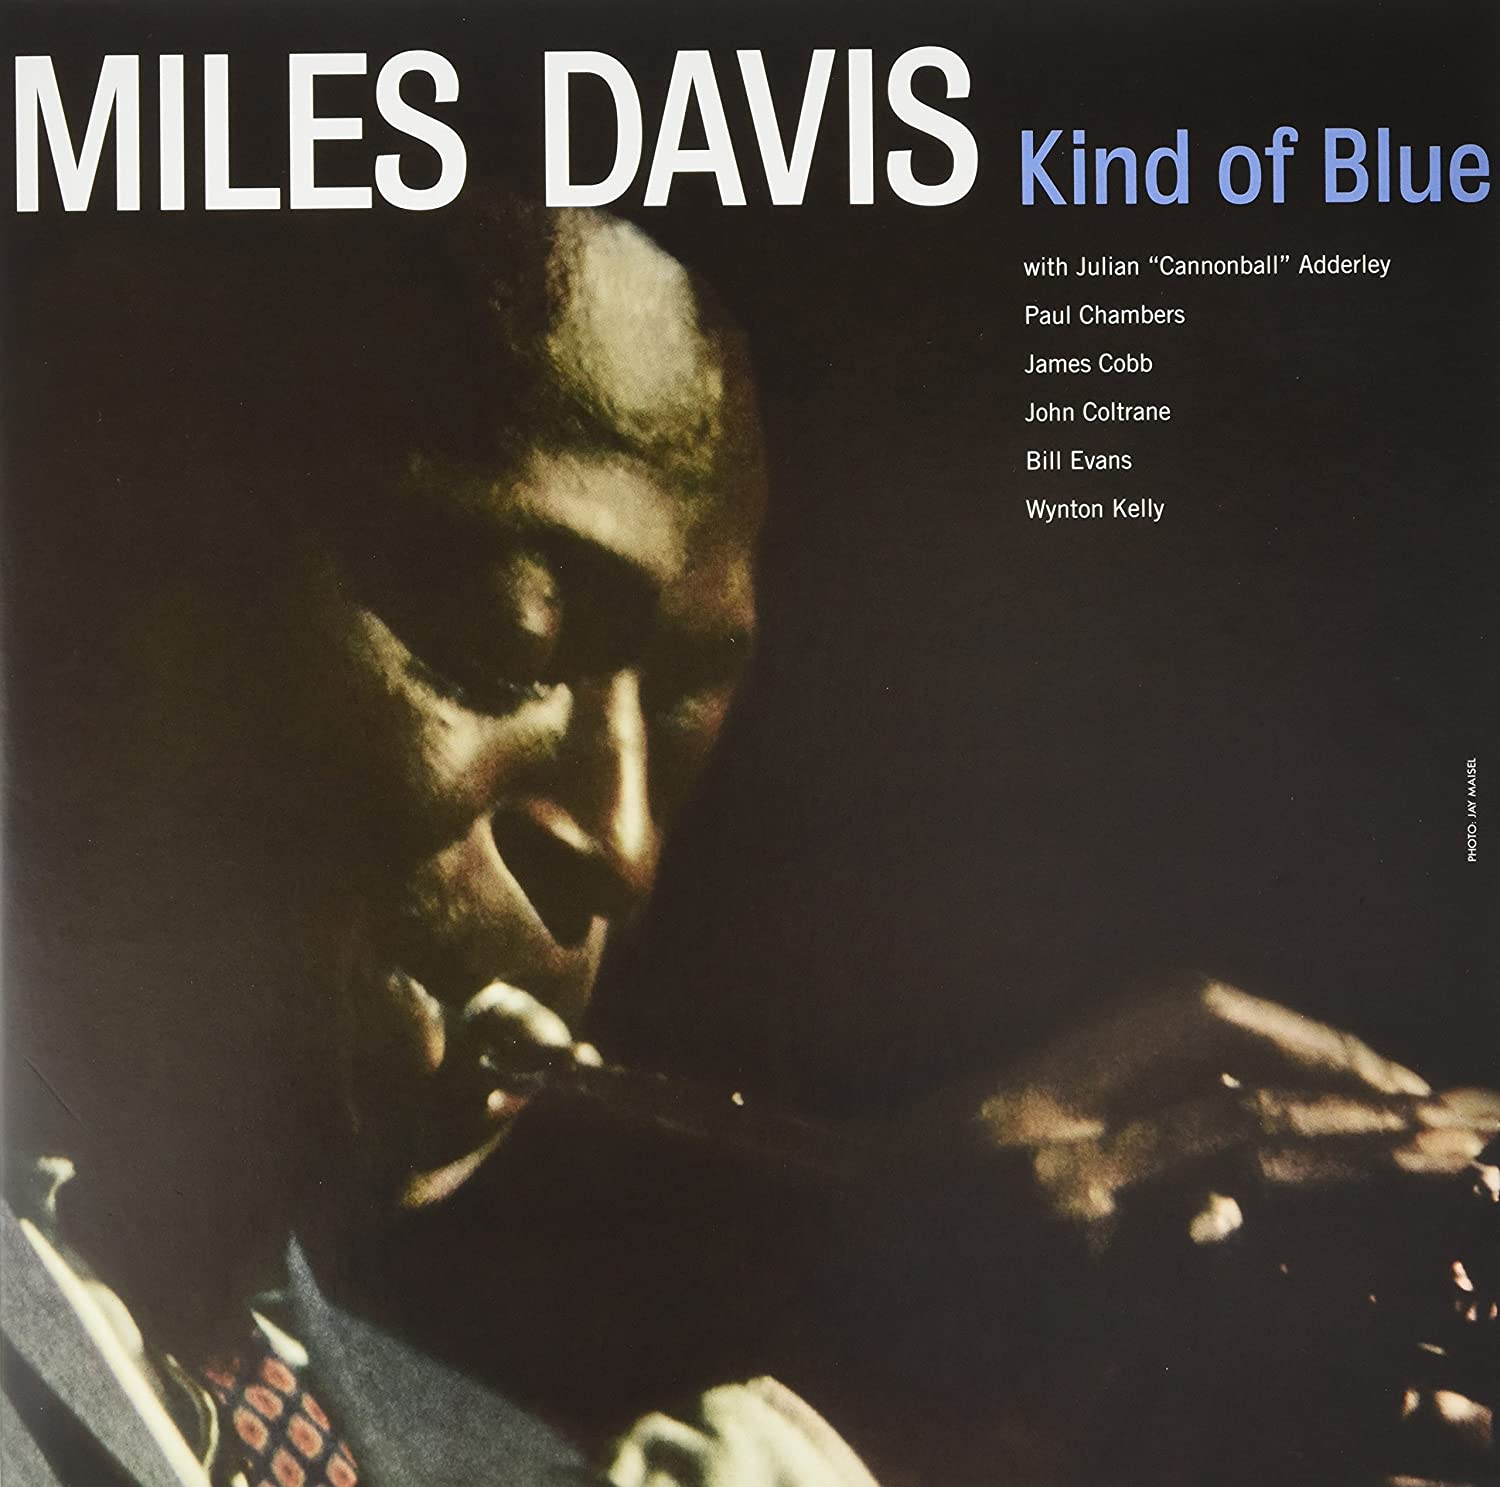 Miles Davis - Kind Of Blue [LP] (180 Gram Vinyl, gatefold, import) - Urban Vinyl | Records, Headphones, and more.